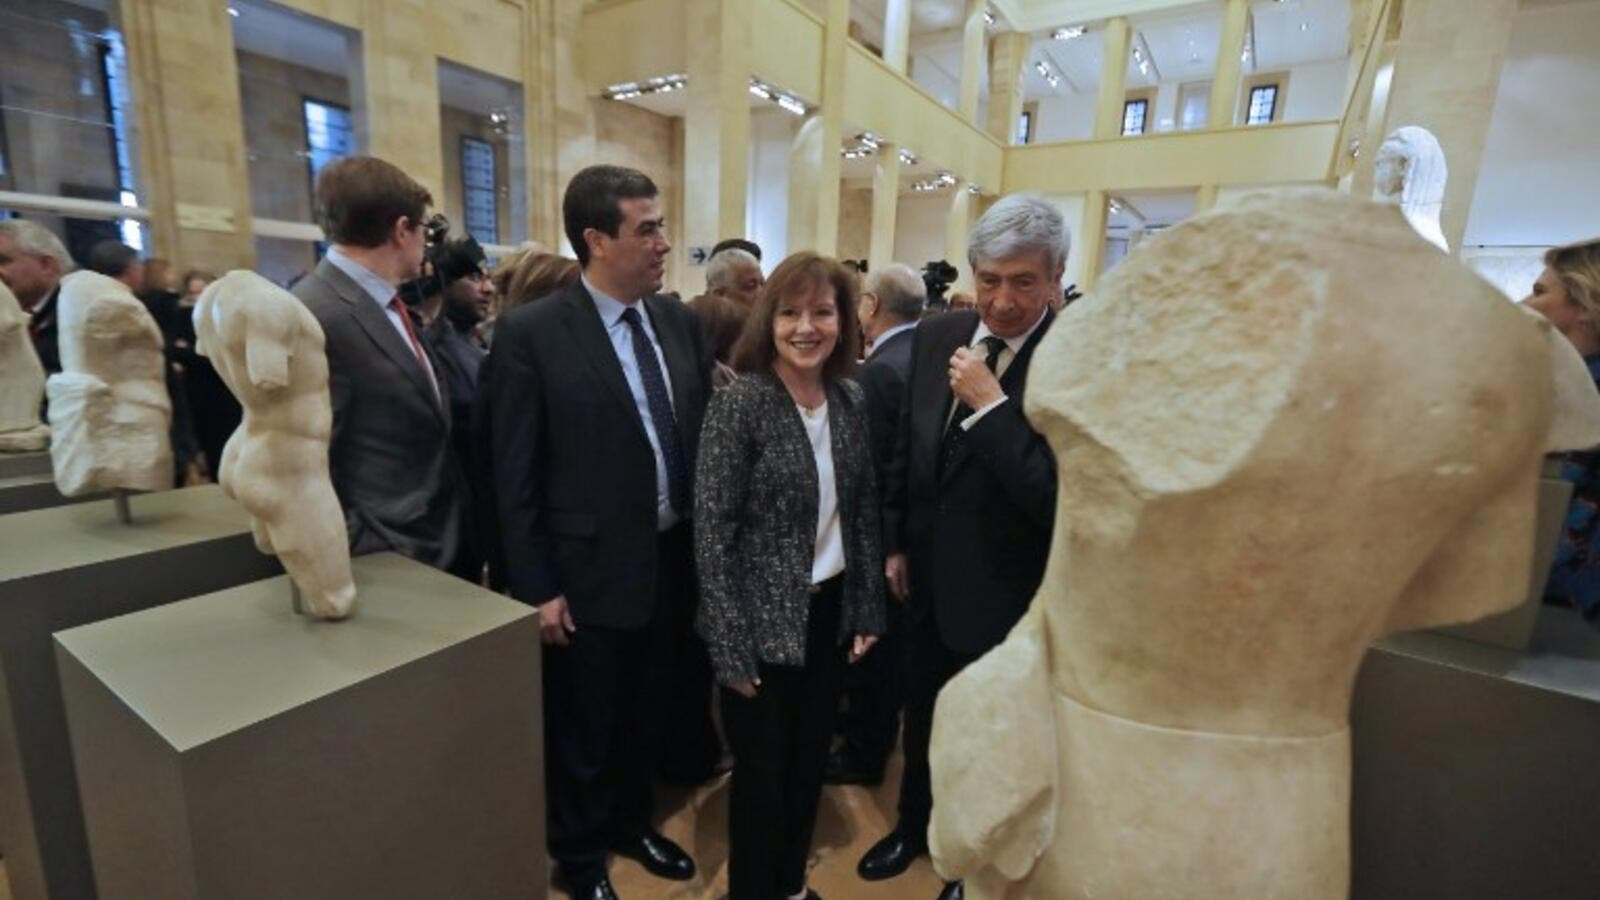 U.S. Ambassador to Lebanon Elizabeth Richards (C) inspects repatriated marble sculptures dating back to 4th to 6th centuries on display during a ceremony at Beirut National Museum in the Lebanese capital on February 2, 2018. The Lebanese Ministry of Culture and the Directorate-General of Antiquities repatriated in December 2017 and January 2018 five marble sculptures lost during the war in 1981. (JOSEPH EID / AFP)